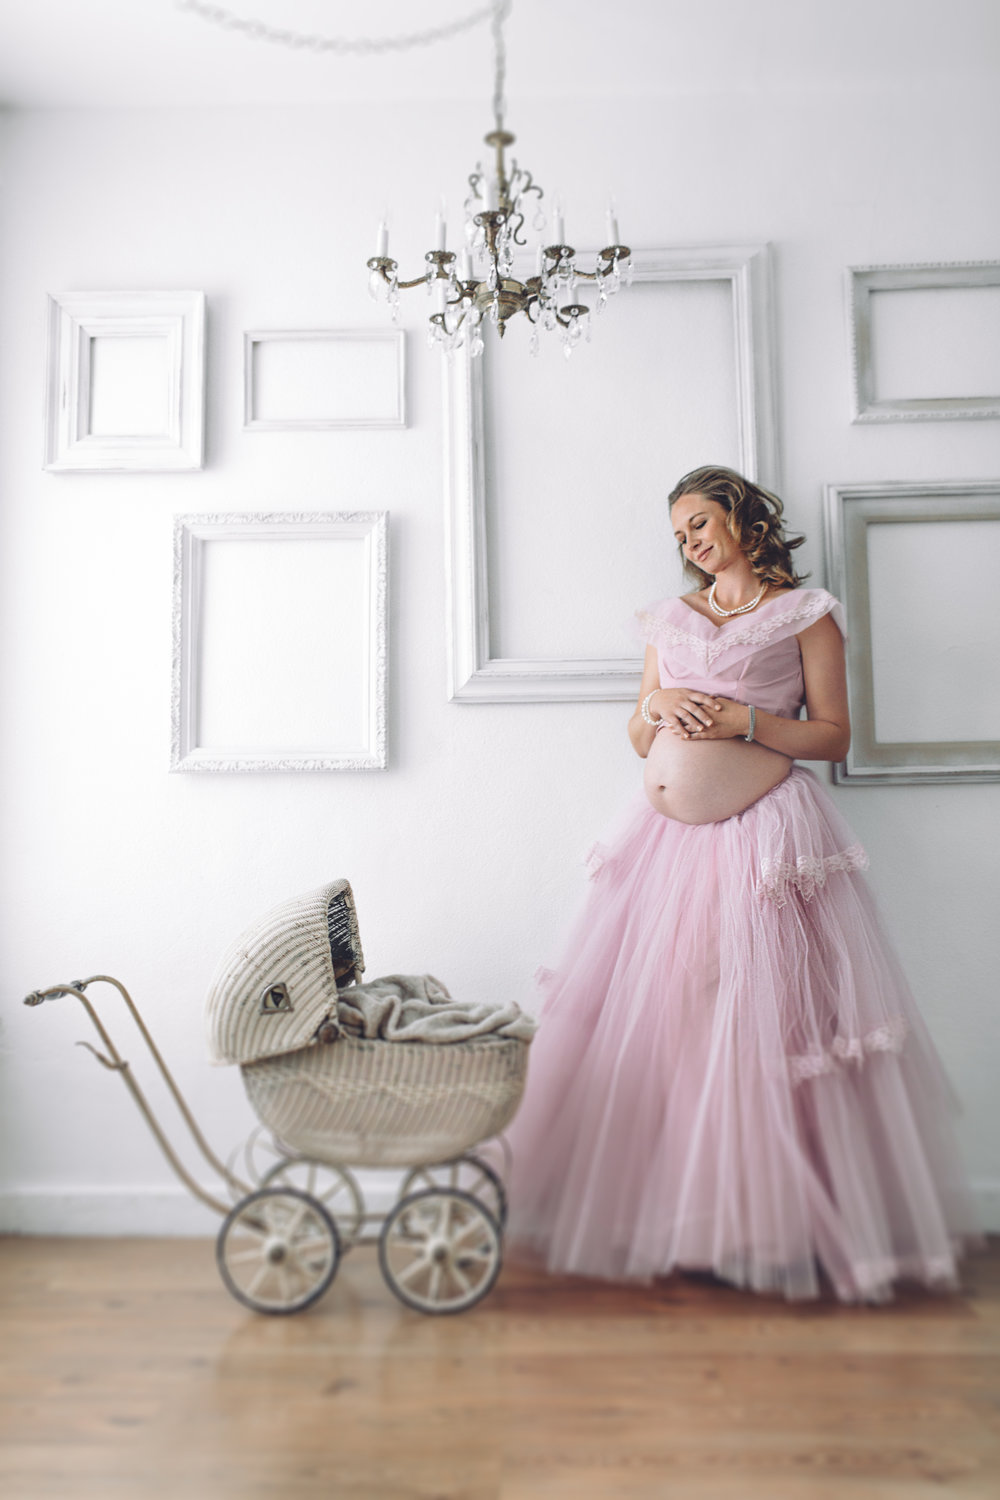 2 BARBIE LOS ANGELES MATERNITY PHOTOGRAPHY STUDIO BEAUTY PORTRAIT VALERIE KENDAL  V KENDAL PHOTOGRAPHY-4759.jpg